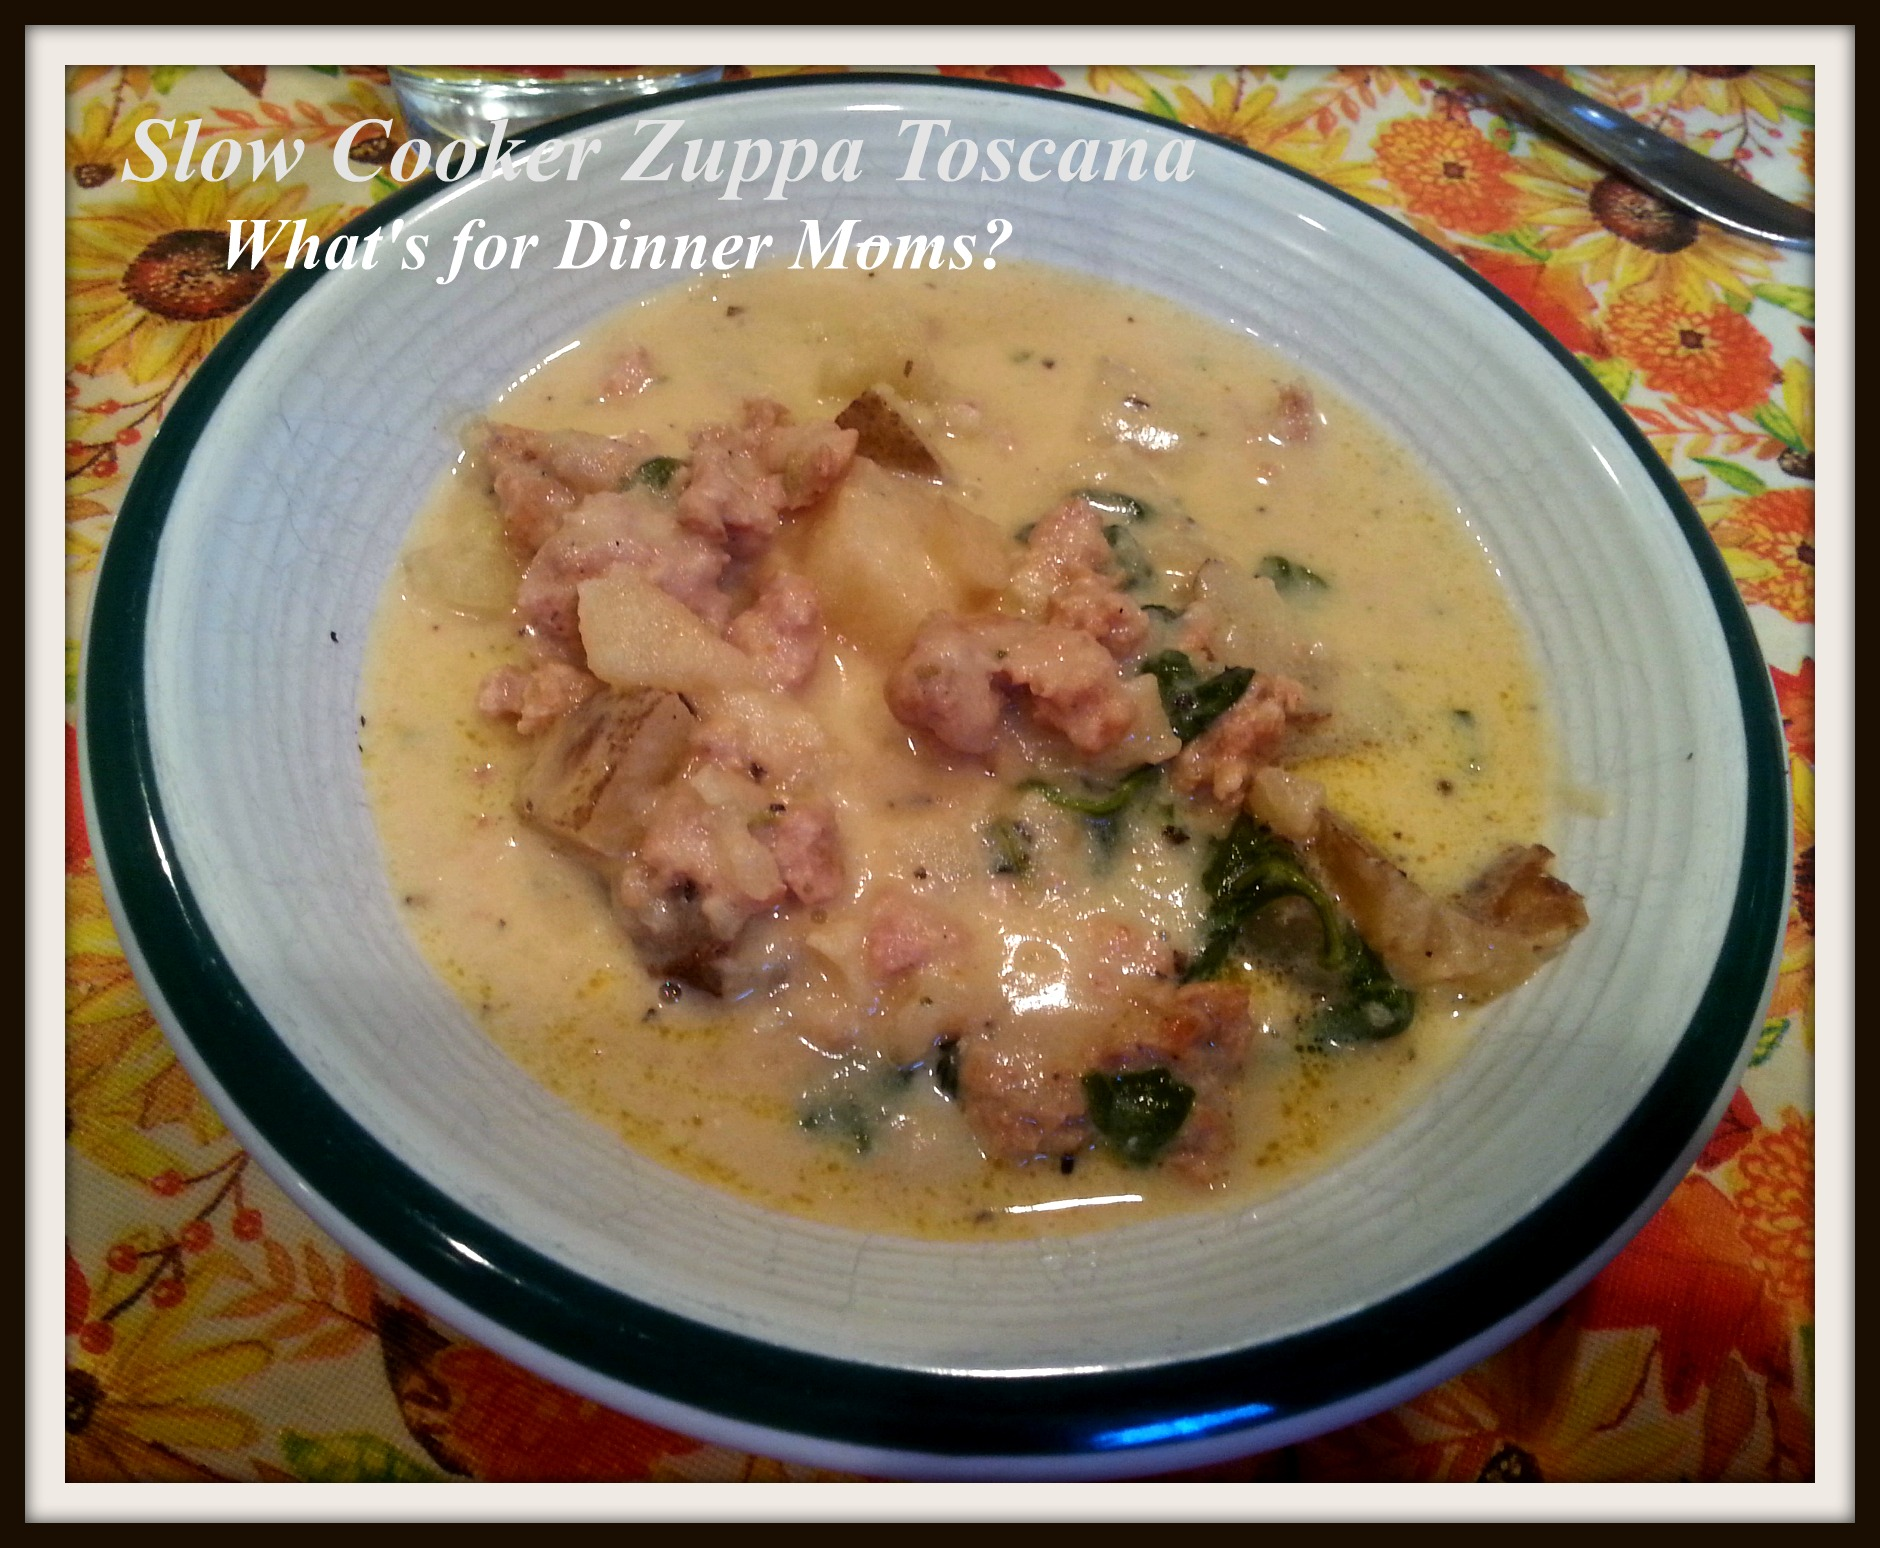 Slow Cooker Zuppa Toscana – What\'s for Dinner Moms?